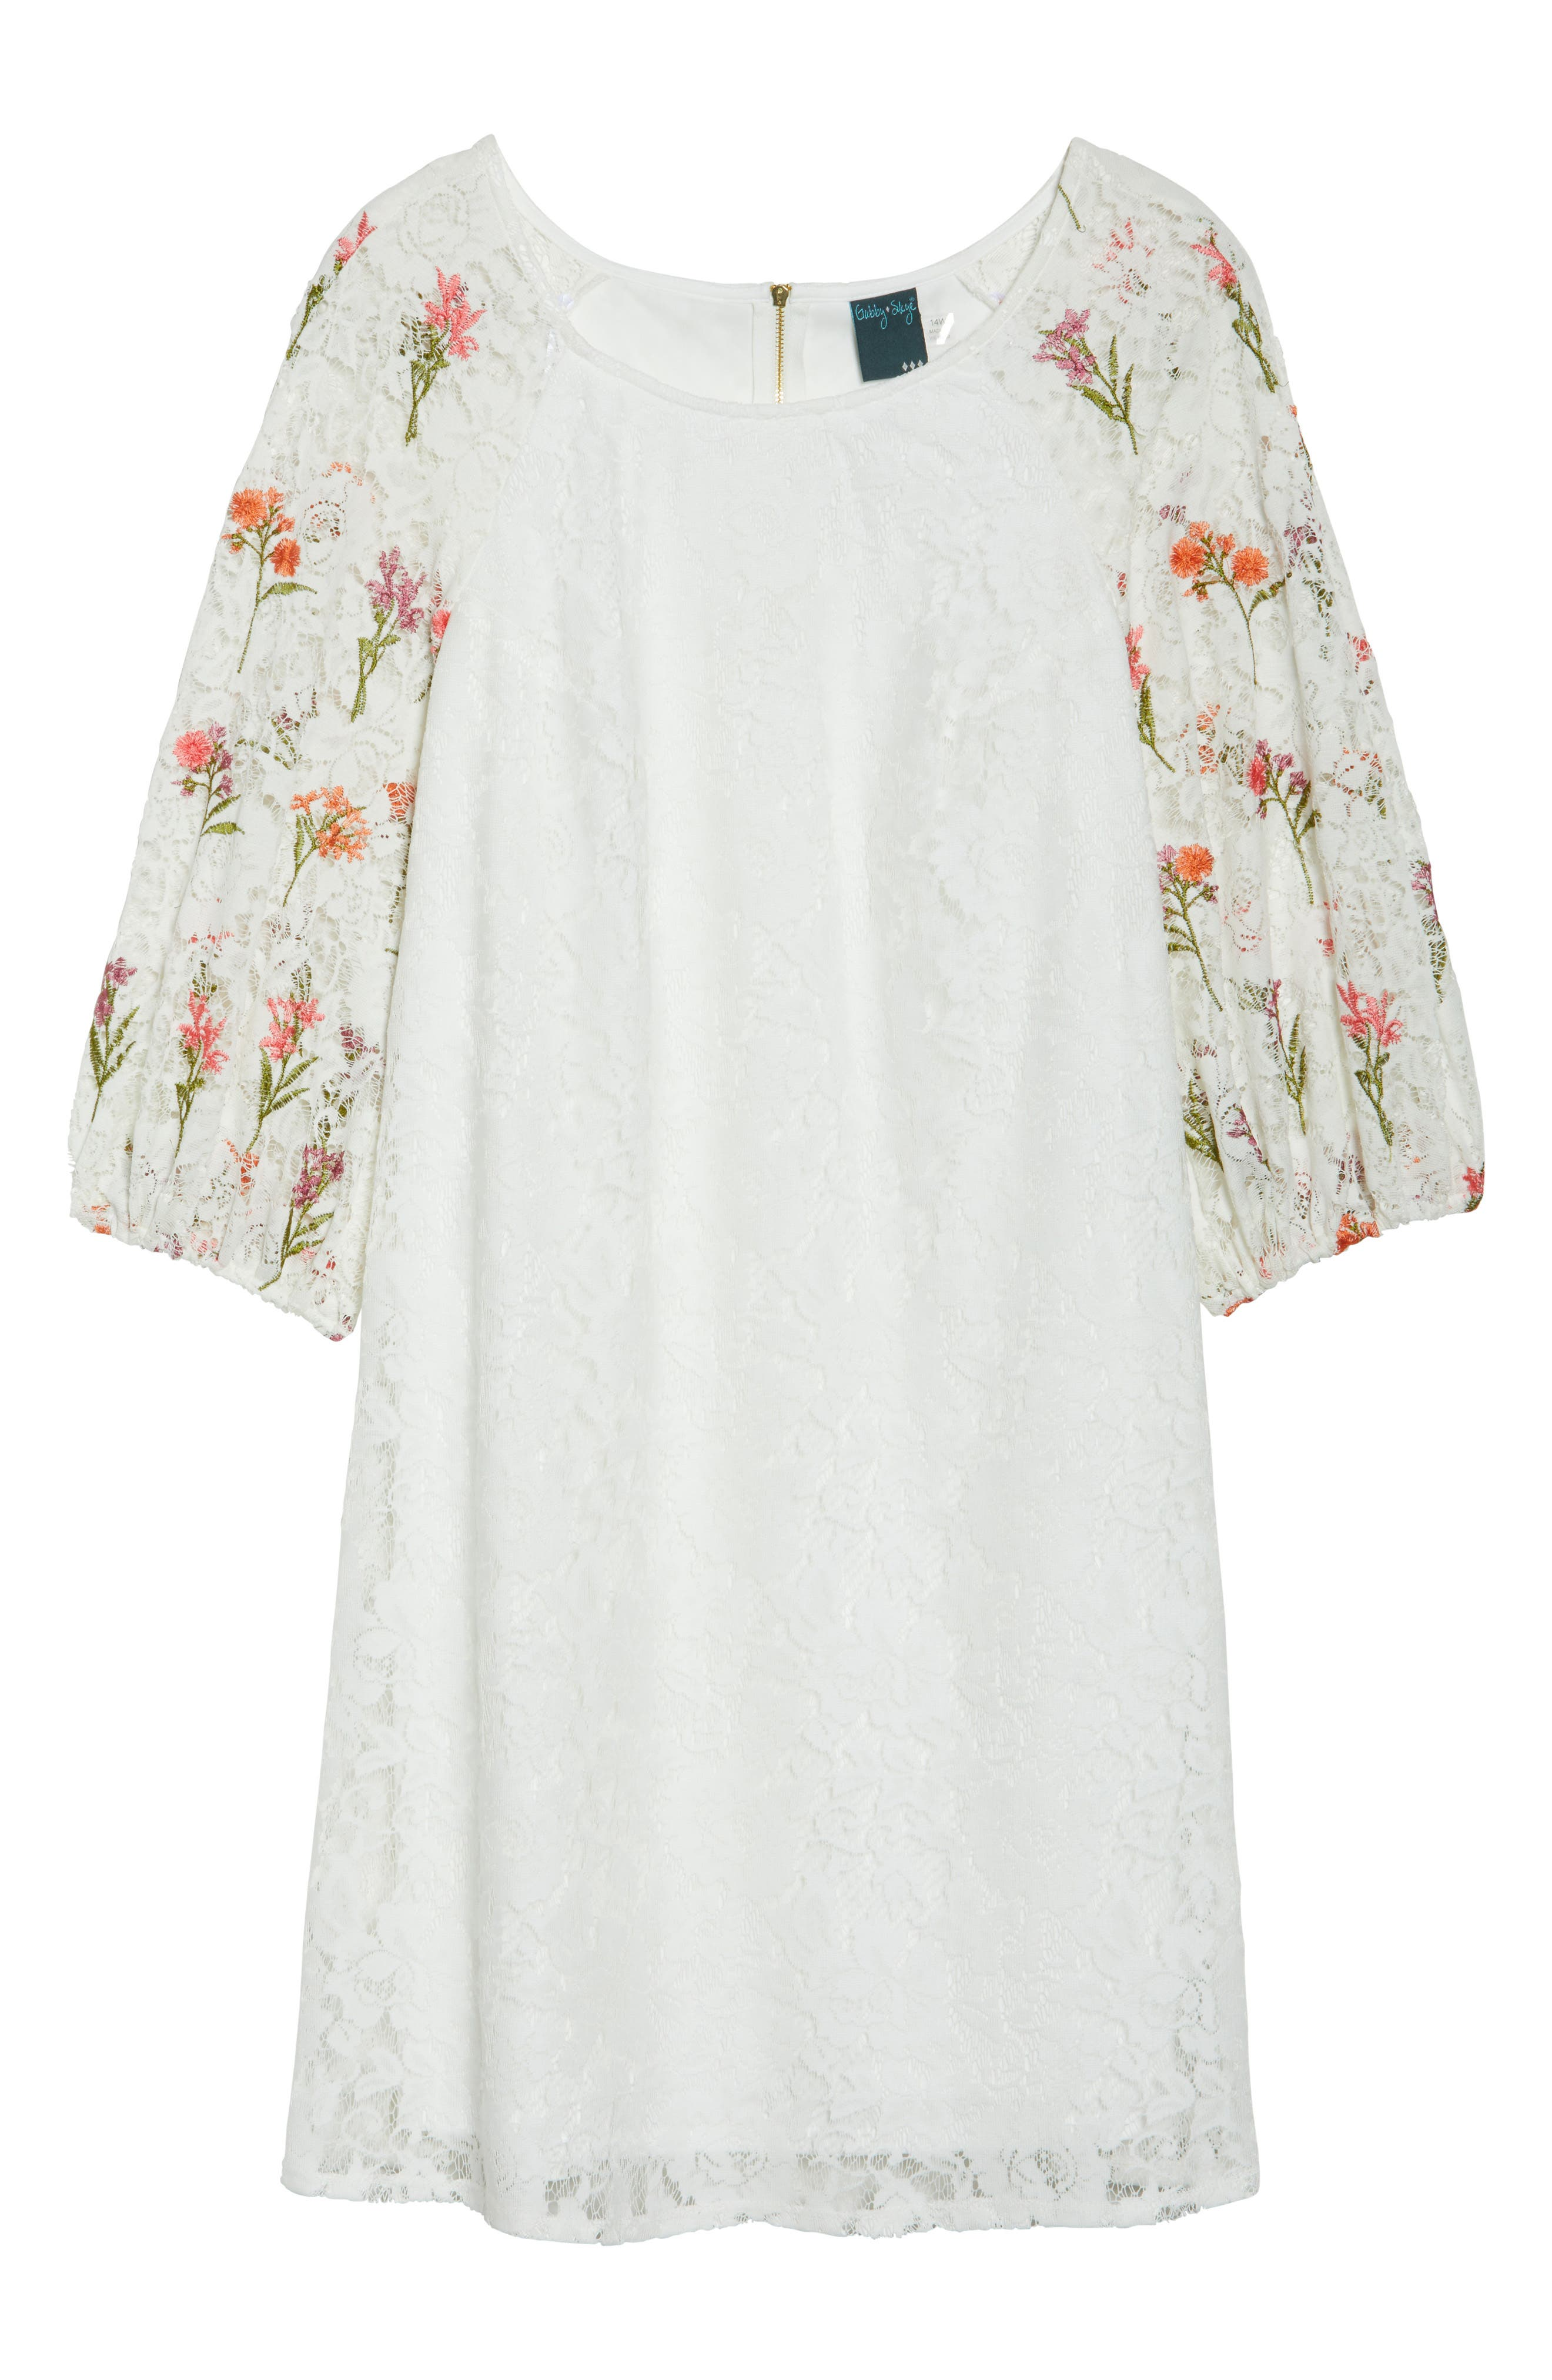 Lace Embroidered Trapeze Dress,                             Alternate thumbnail 6, color,                             Ivory/ Coral